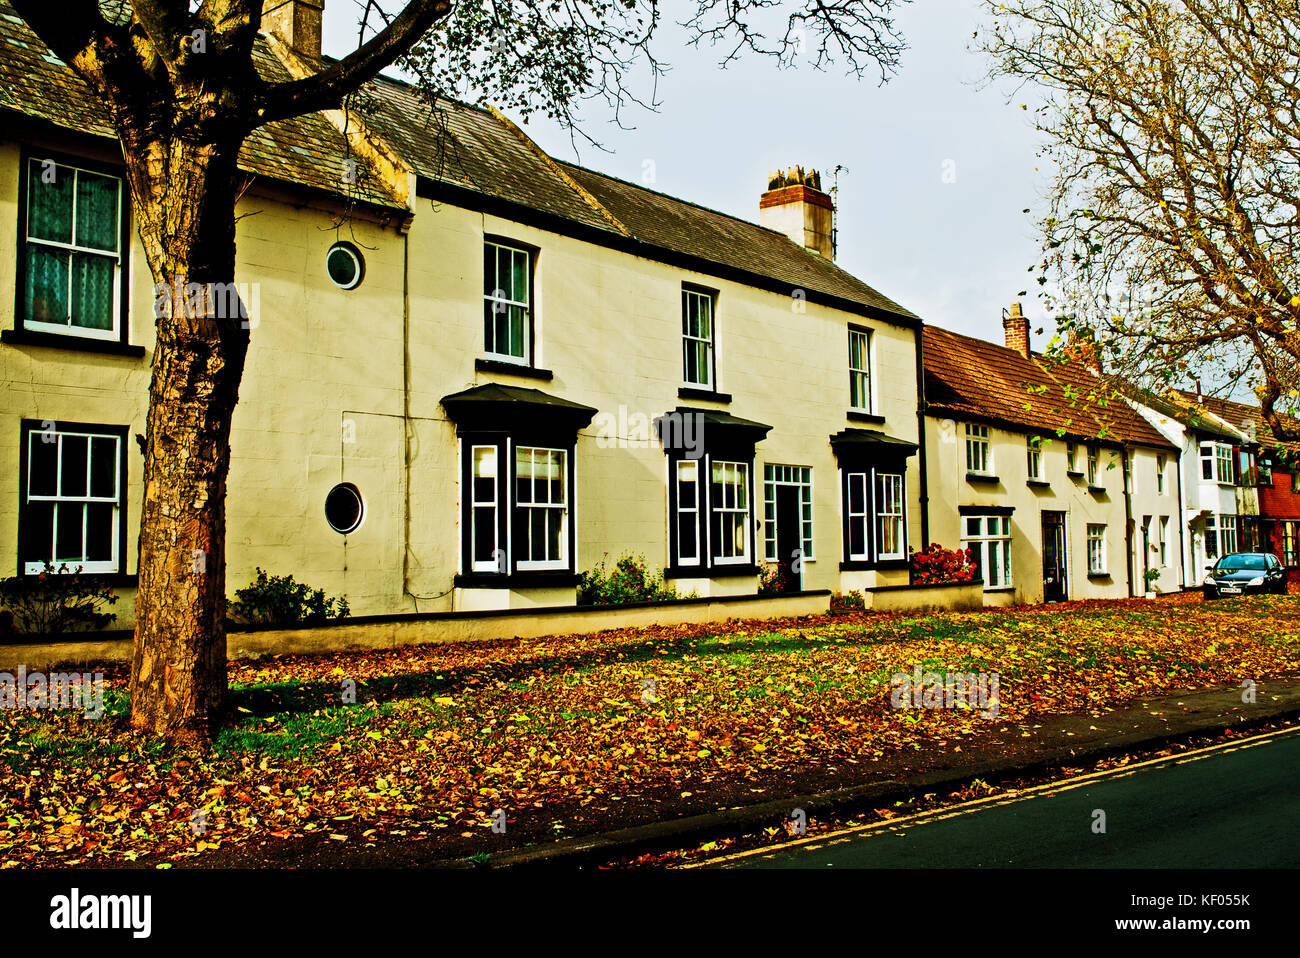 North End, Sedgefield, County Durham - Stock Image